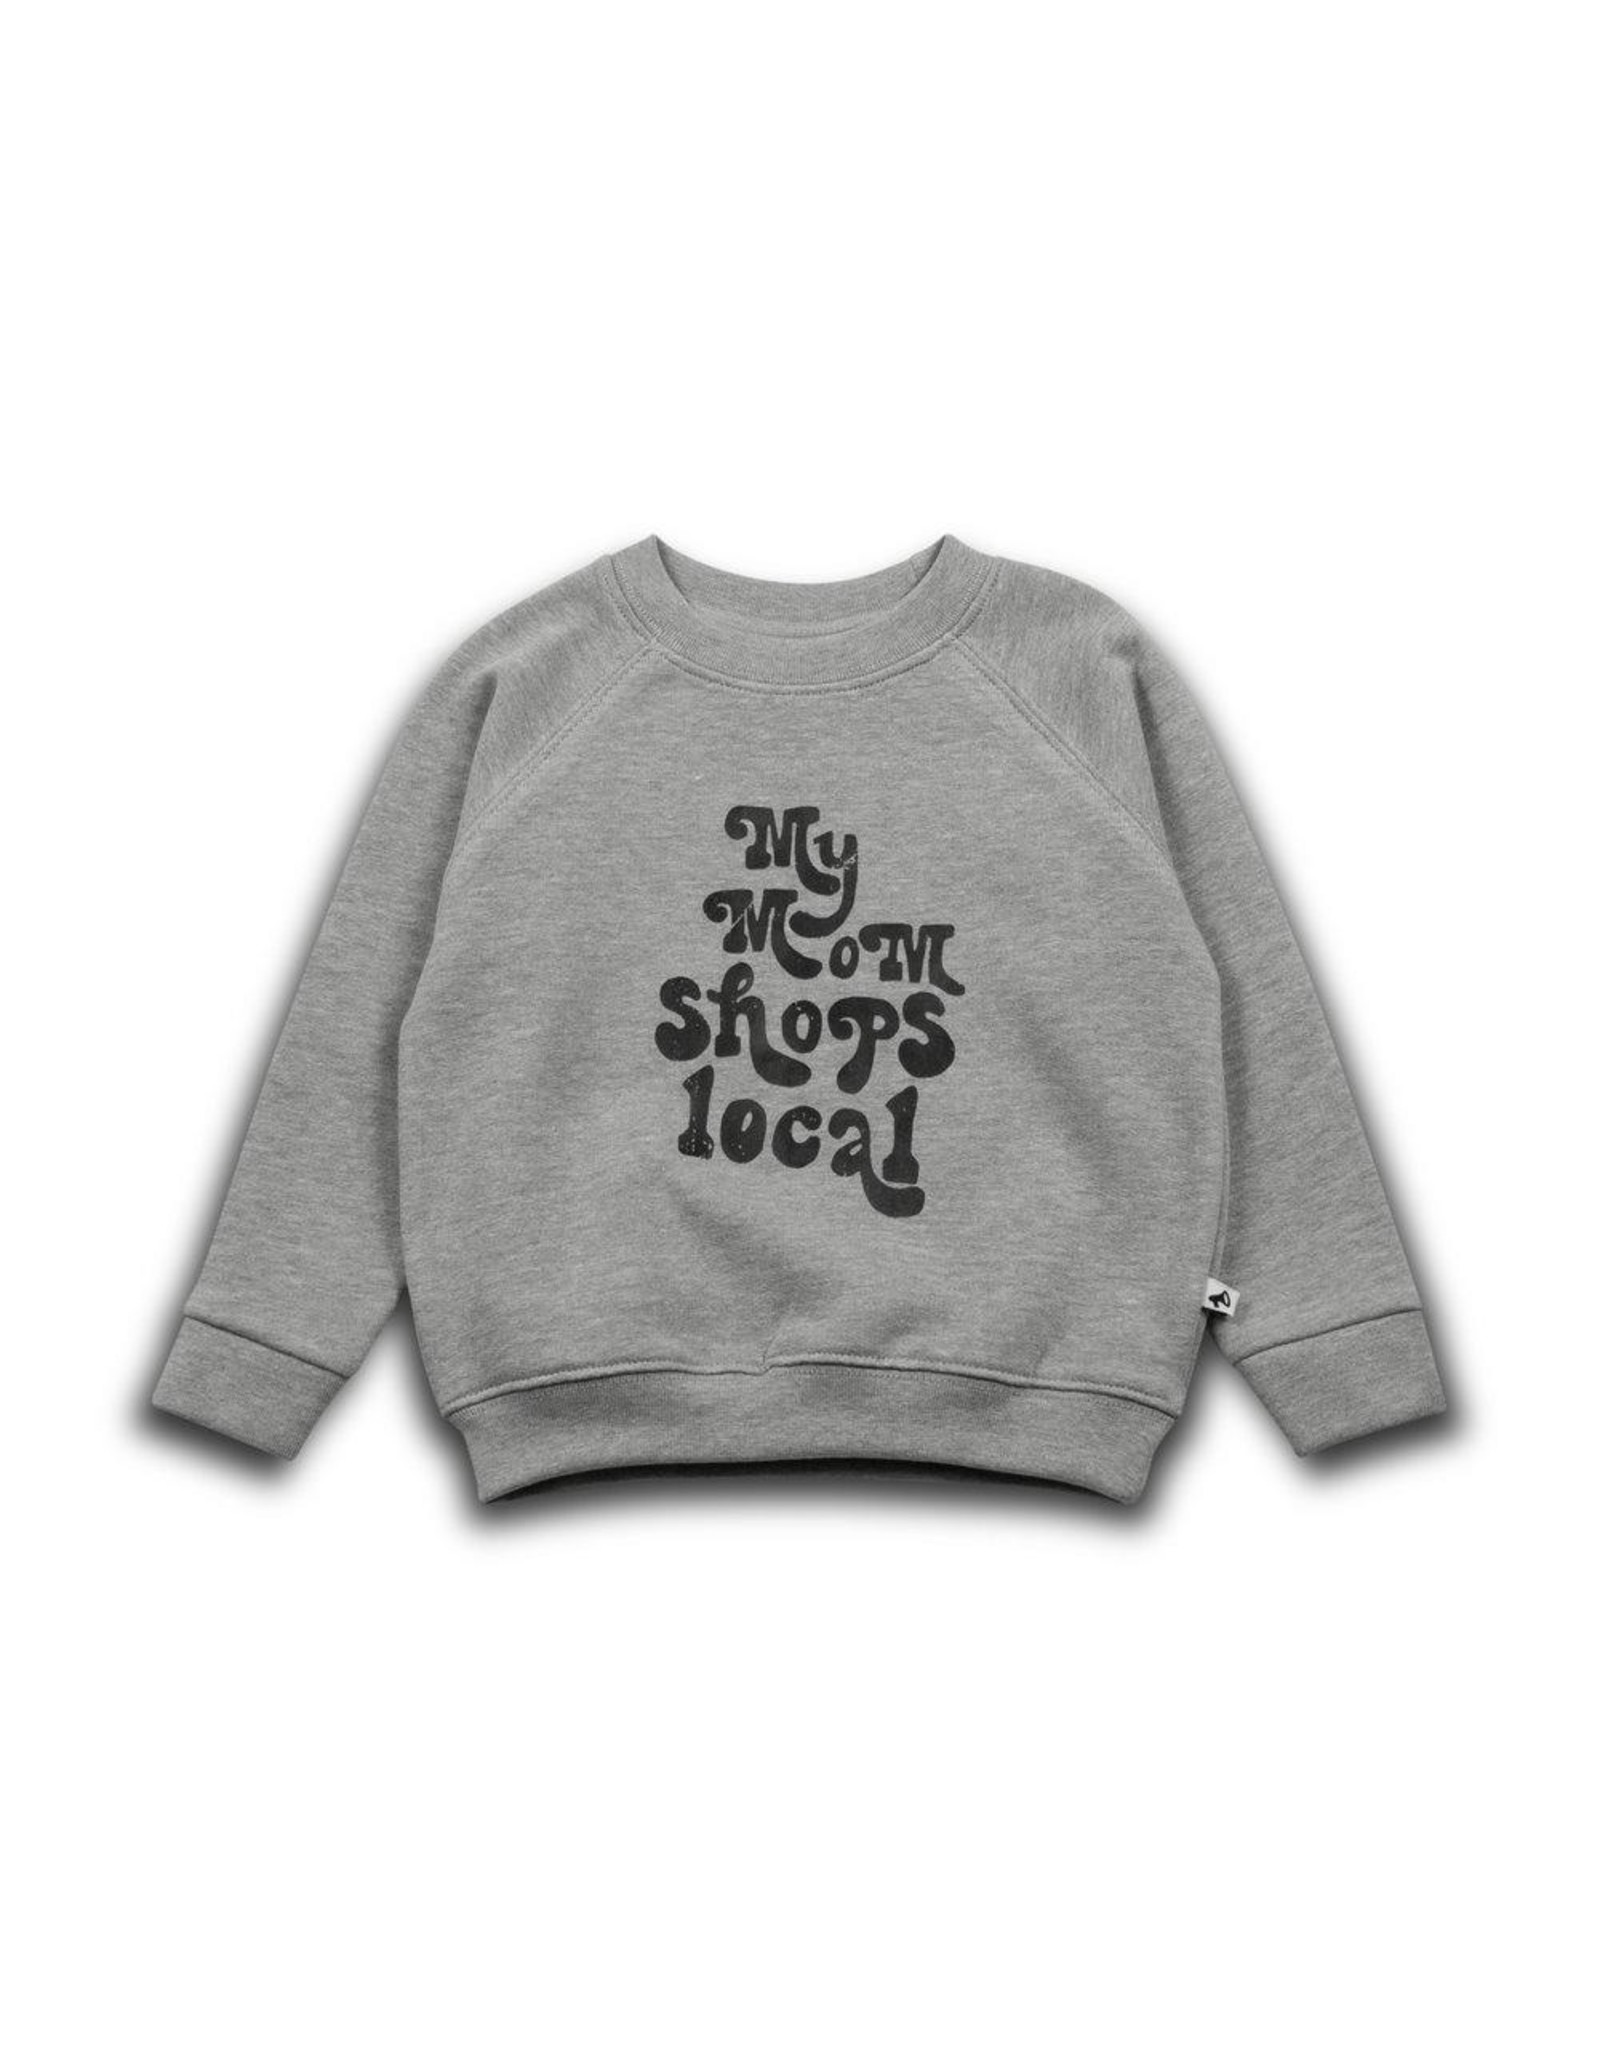 Cos I Said So Cos I Said So Sweater Grey My Mom Shops Local Maat 104/110